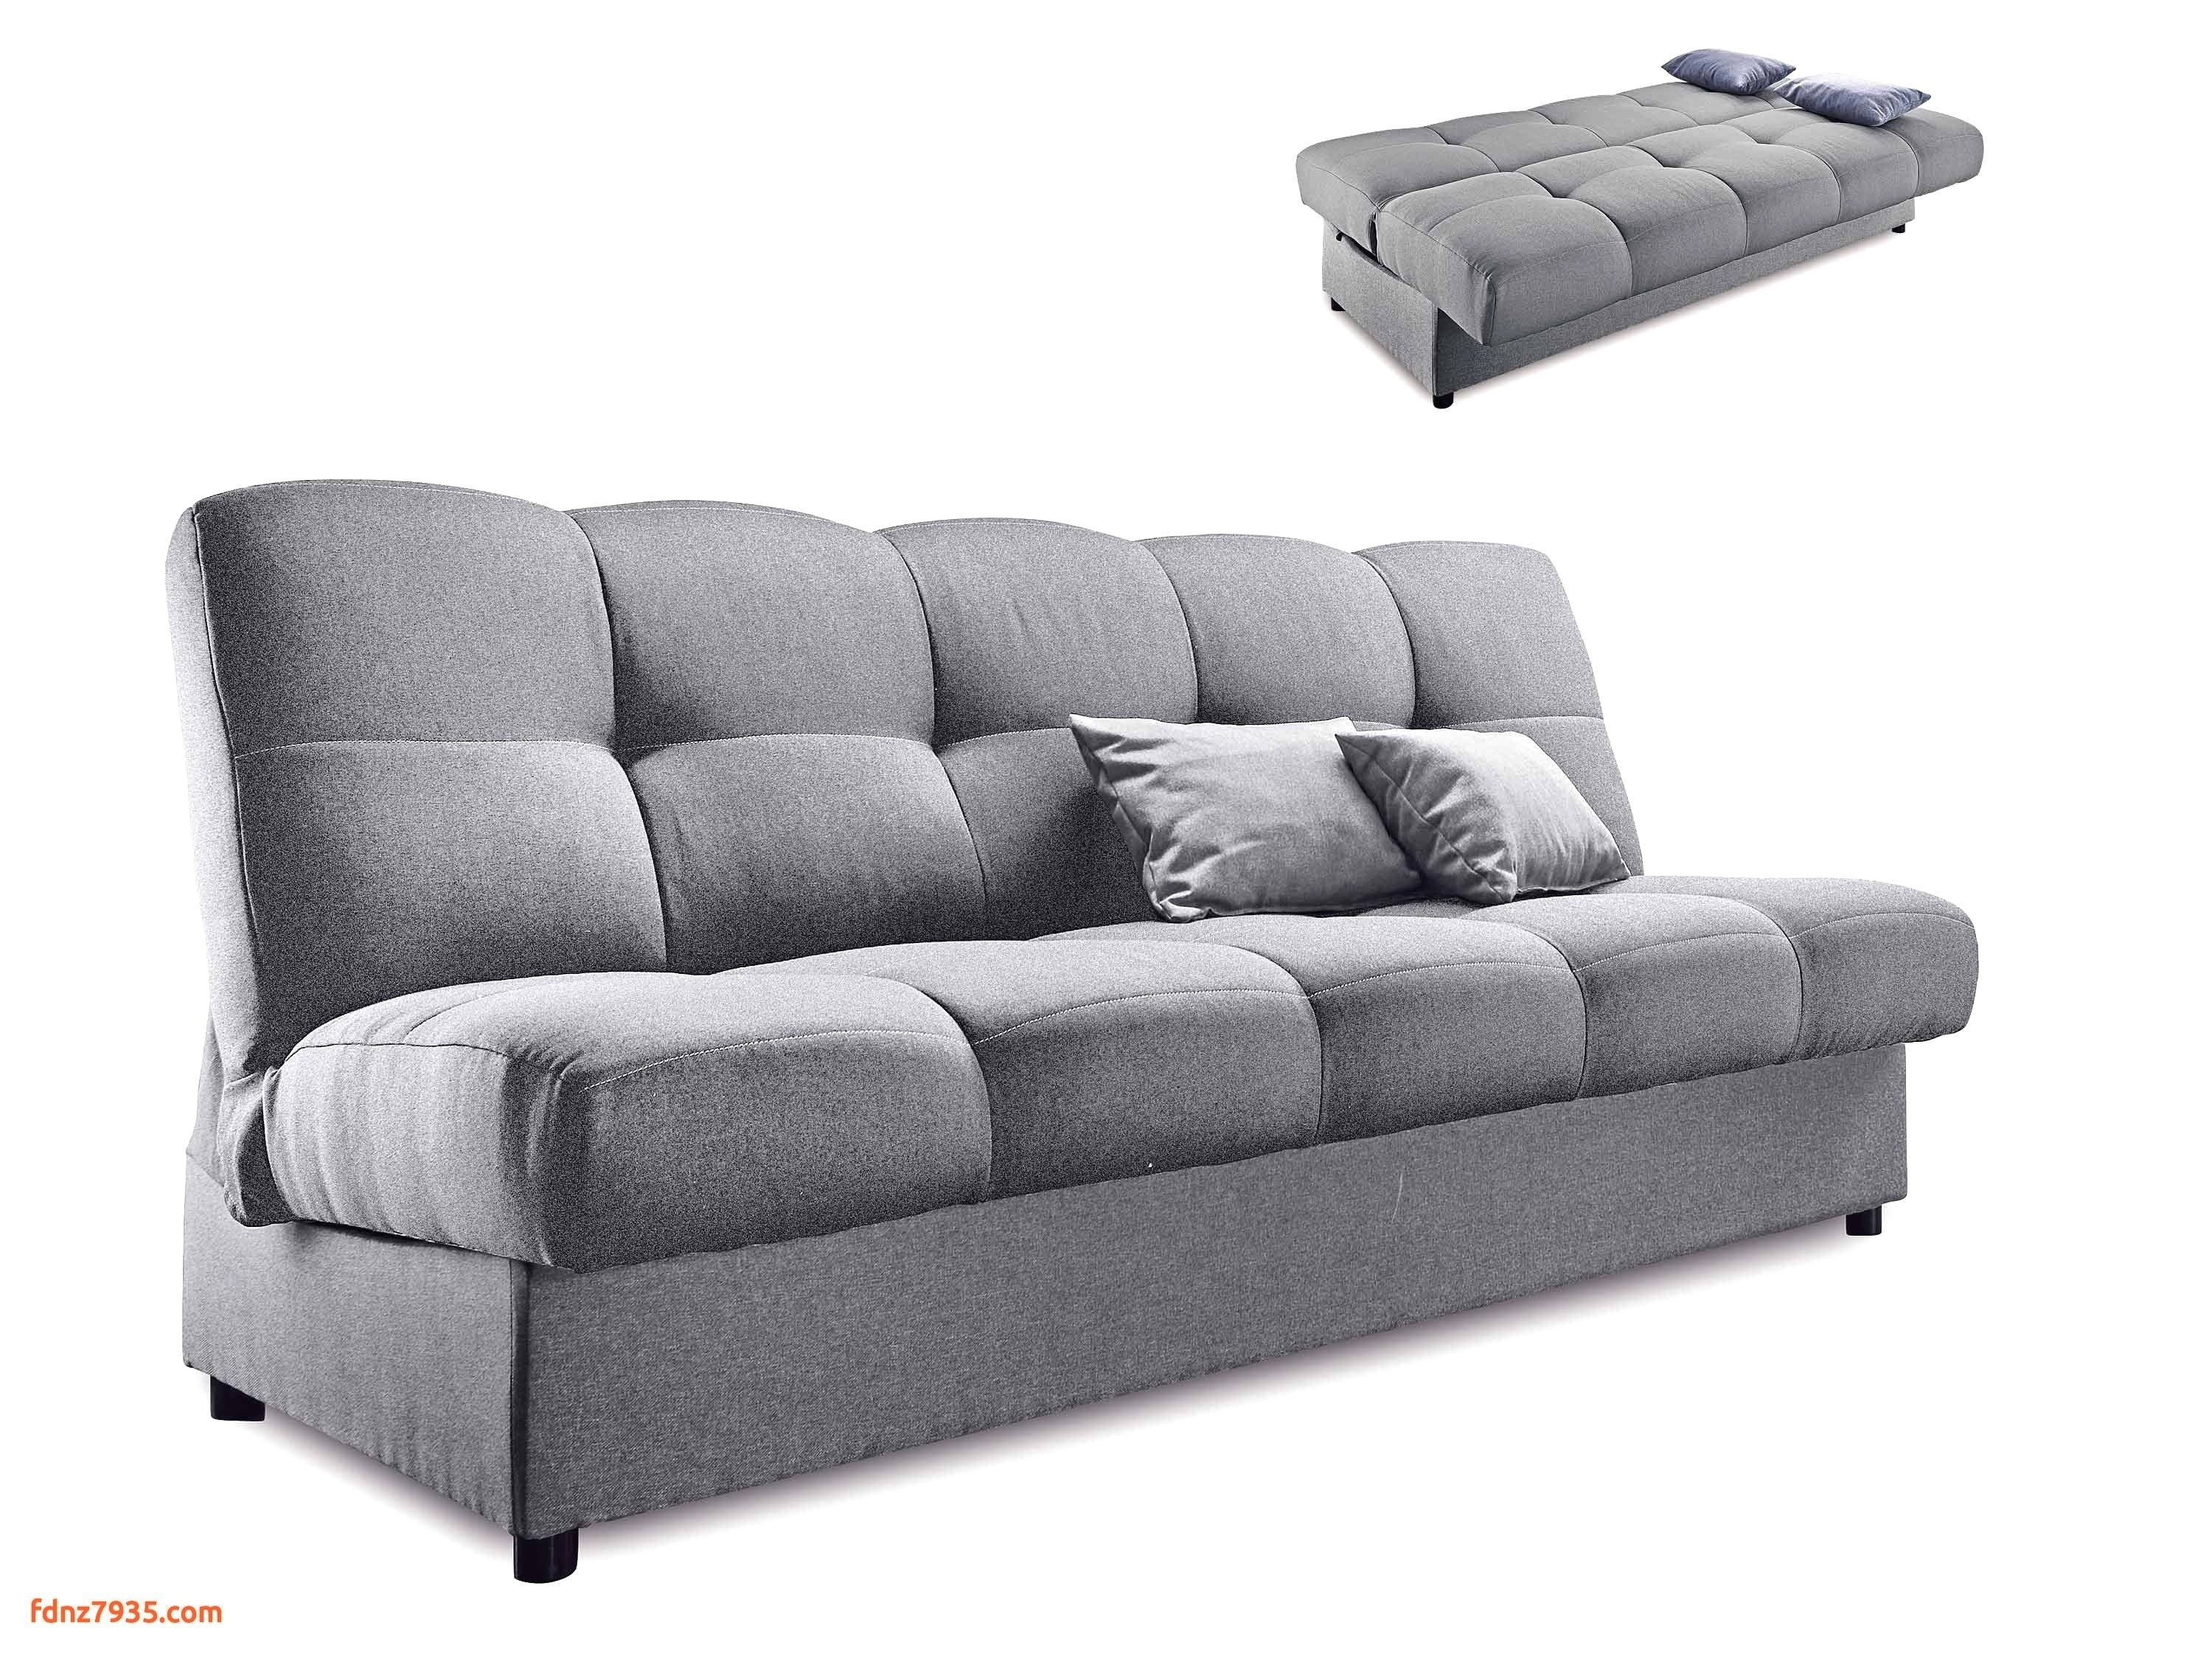 Bettsofa Hagalund 27 Luxus Sofa Design Sofa Pinterest Sofa Sofa Design Und Design